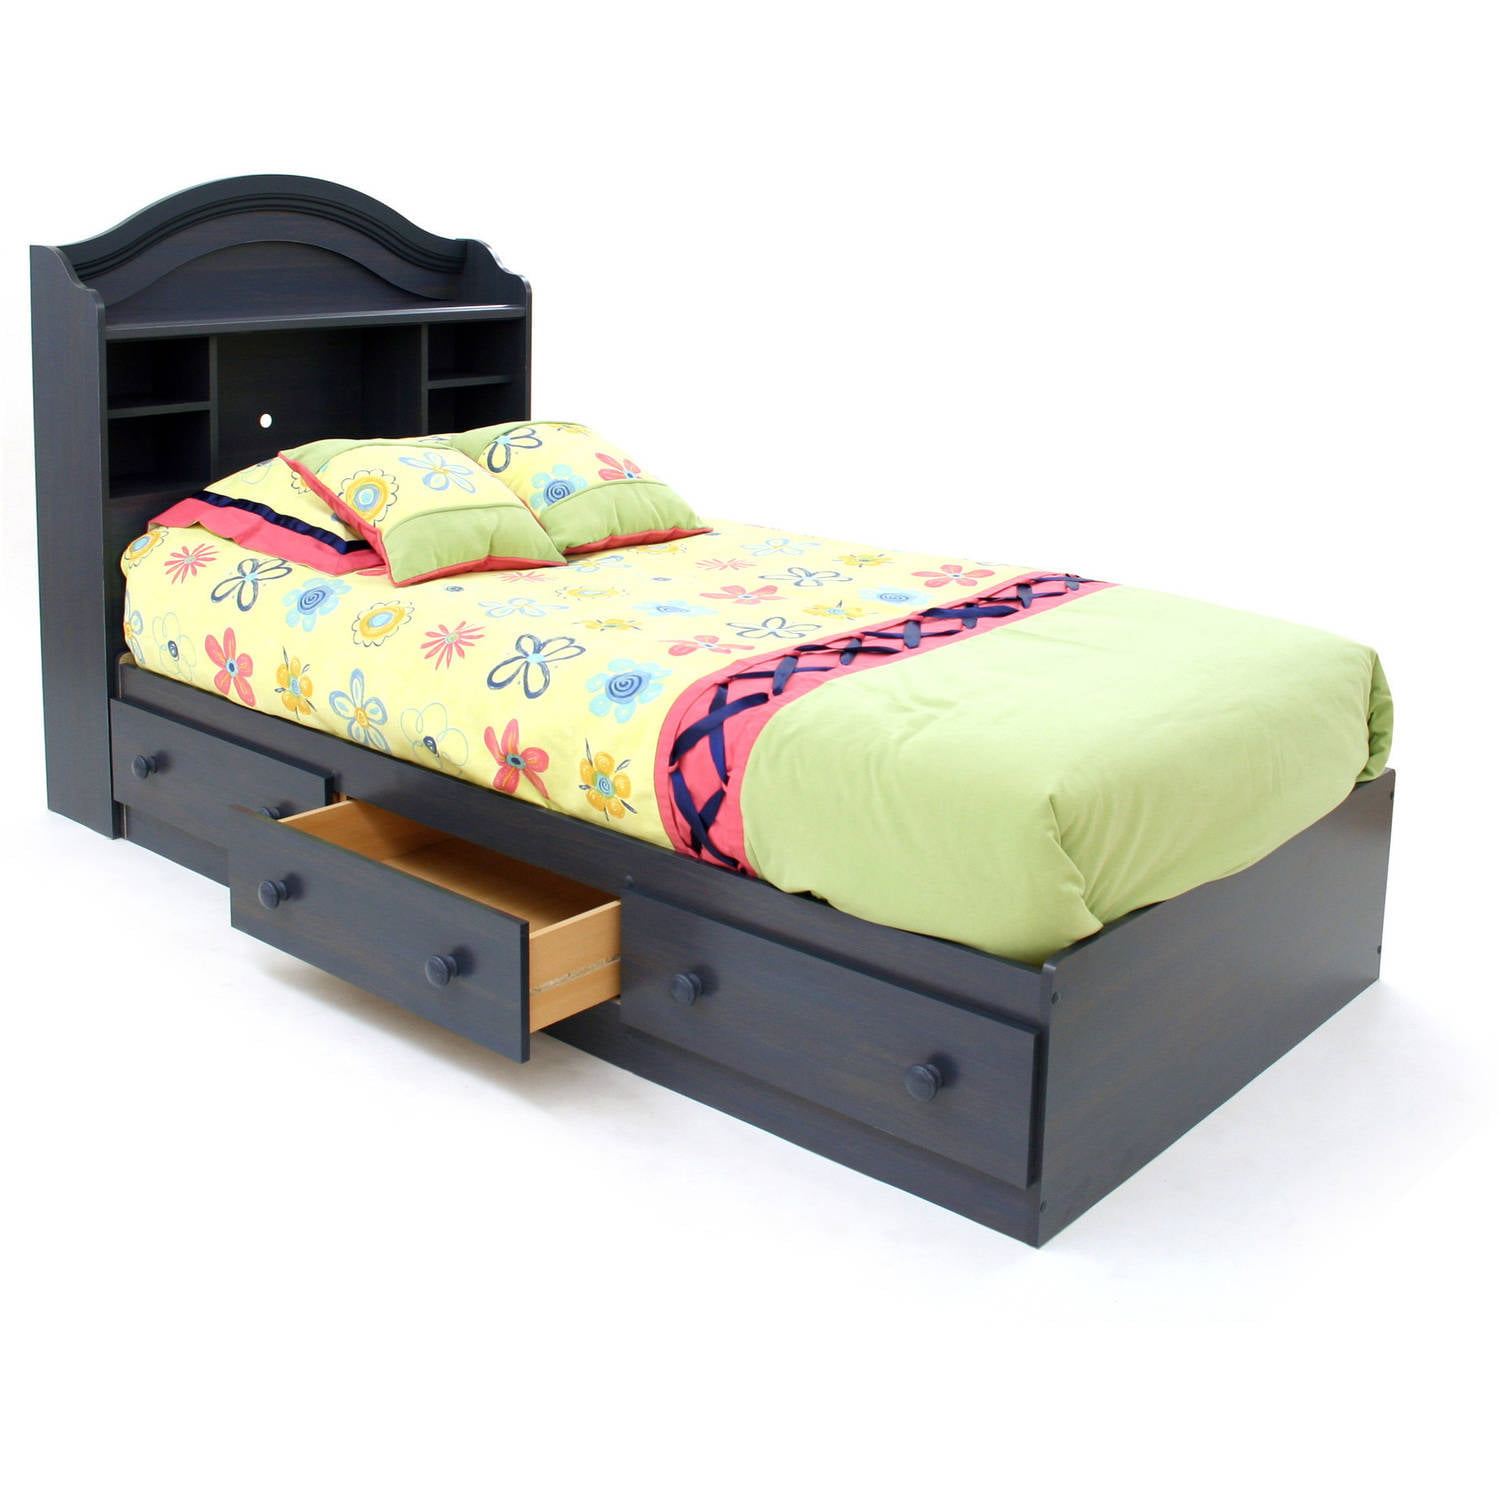 South Shore Bedroom Furniture South Shore Summer Breeze Twin Mates Bed With 3 Drawers 39